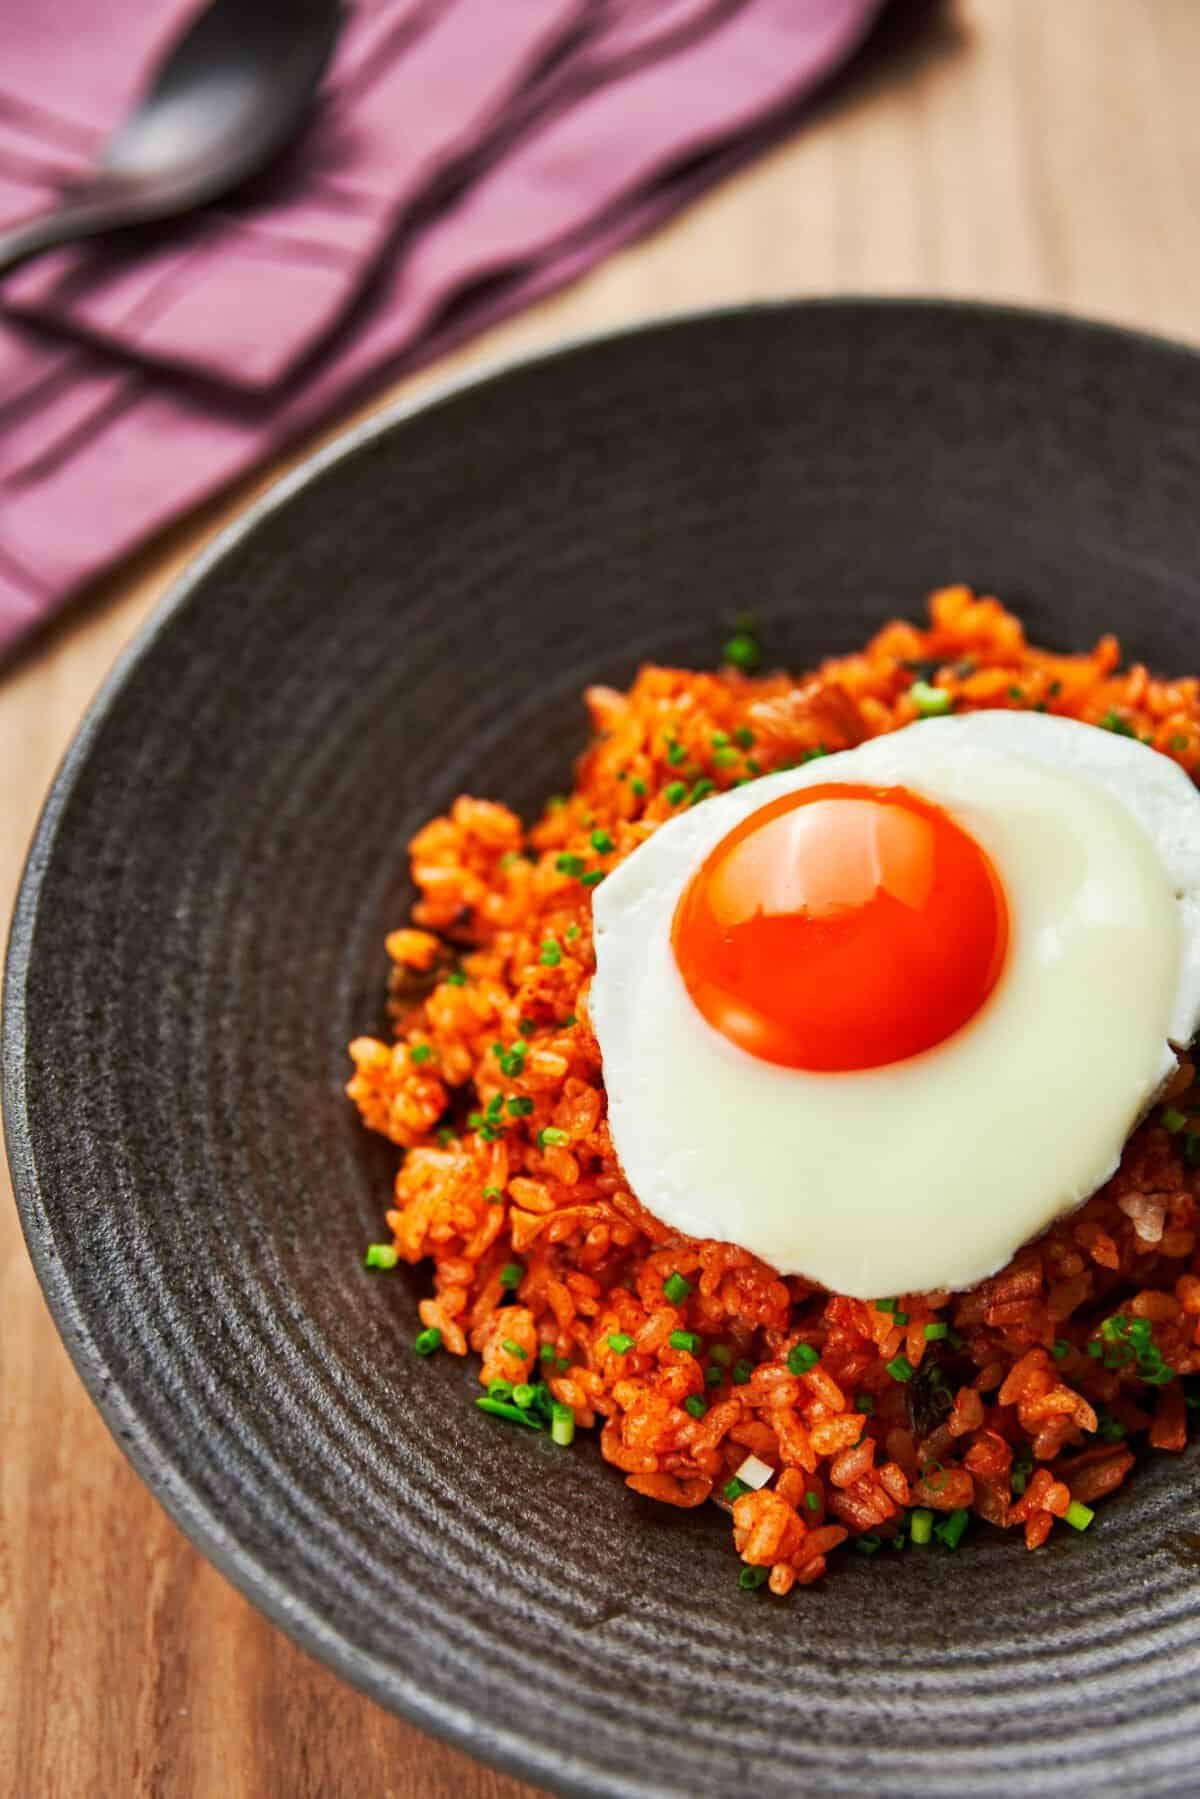 Spicy and loaded wtih flavor, this easy kimchi fried rice with a fried egg on top comes together from just a handful of ingredients.